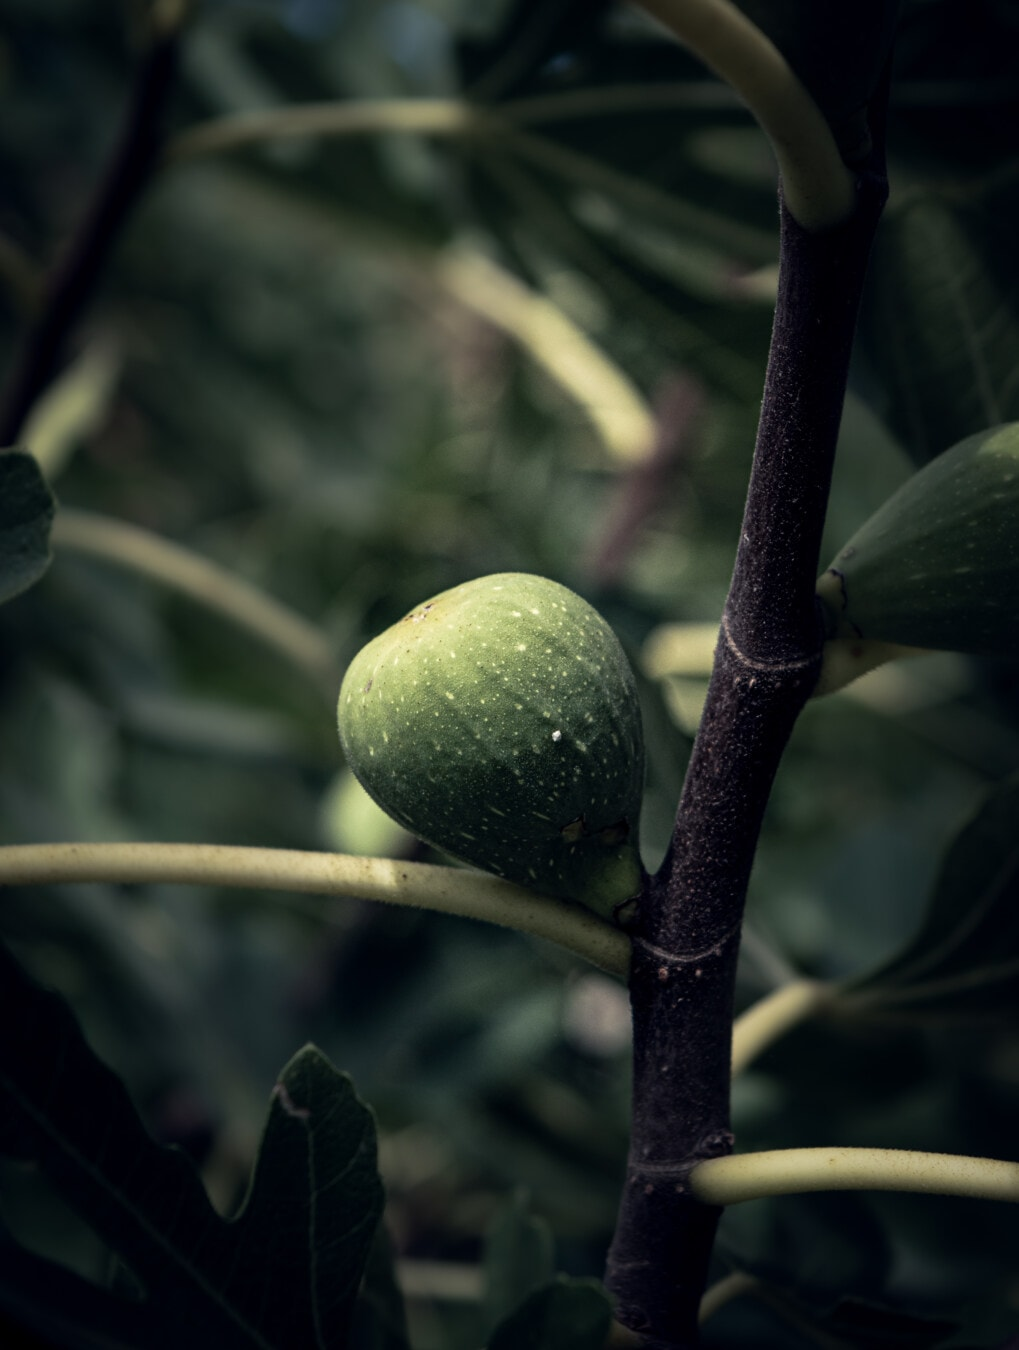 herb, organic, tropical, fruit tree, close-up, orchard, plantation, exotic, fruit, branch